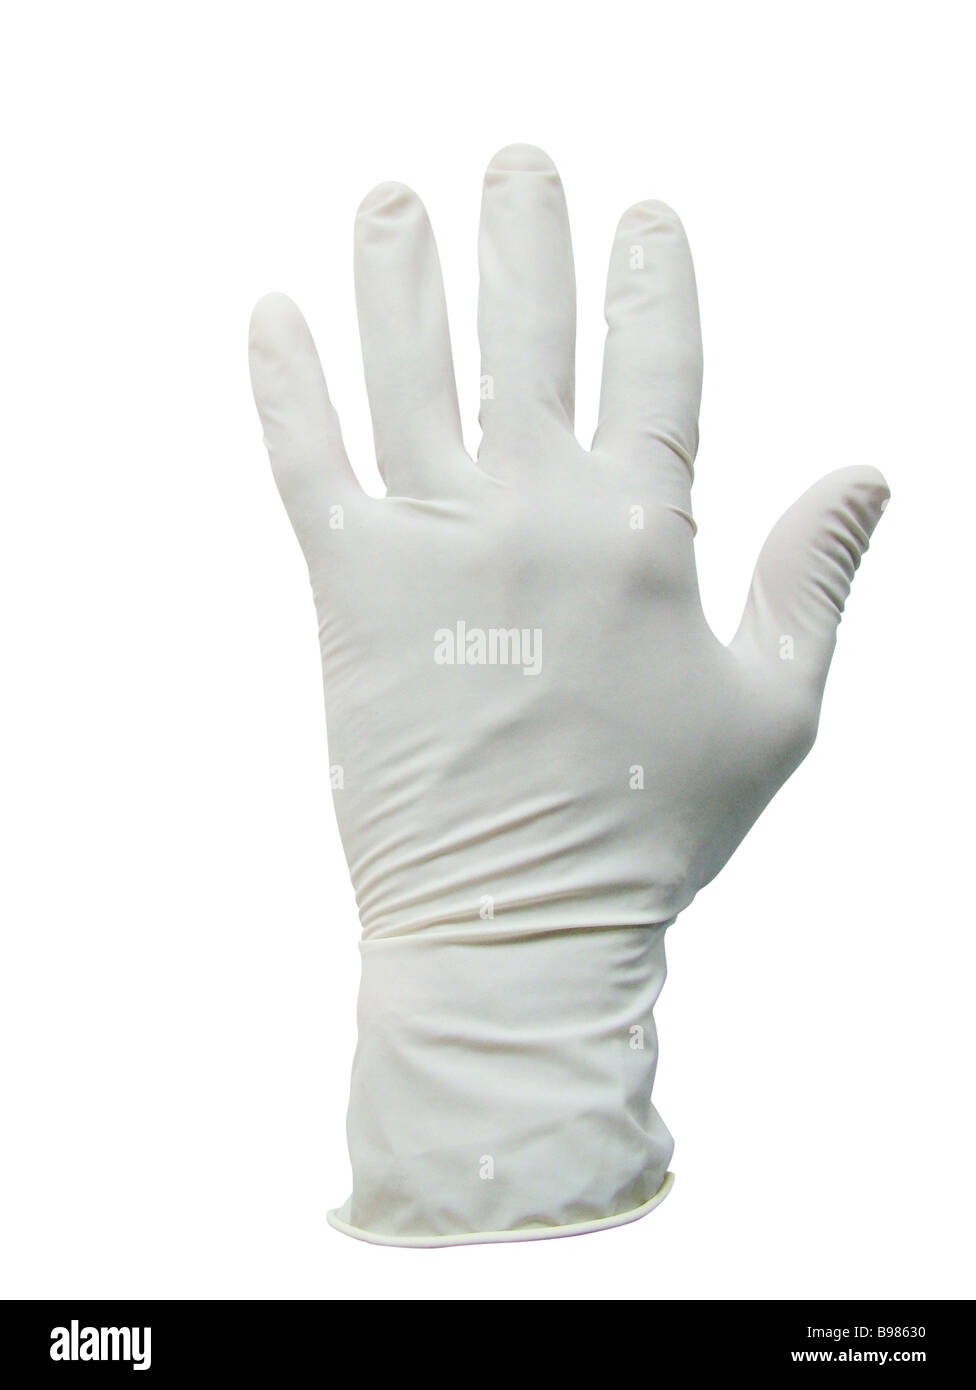 White rubber glove - Stock Image